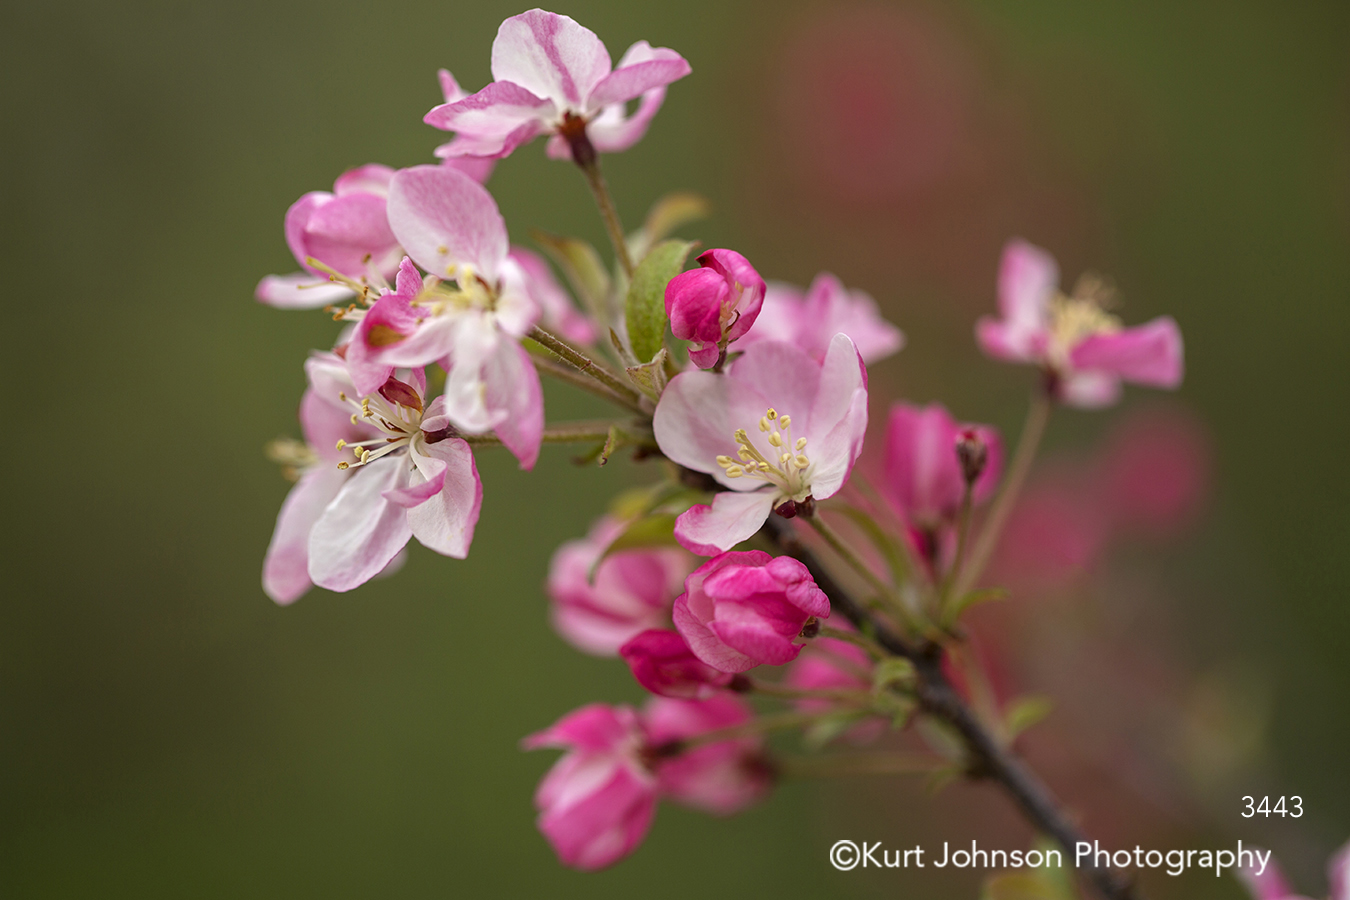 pink spring flowers buds cherry blossom blossoms detail close up stem branch